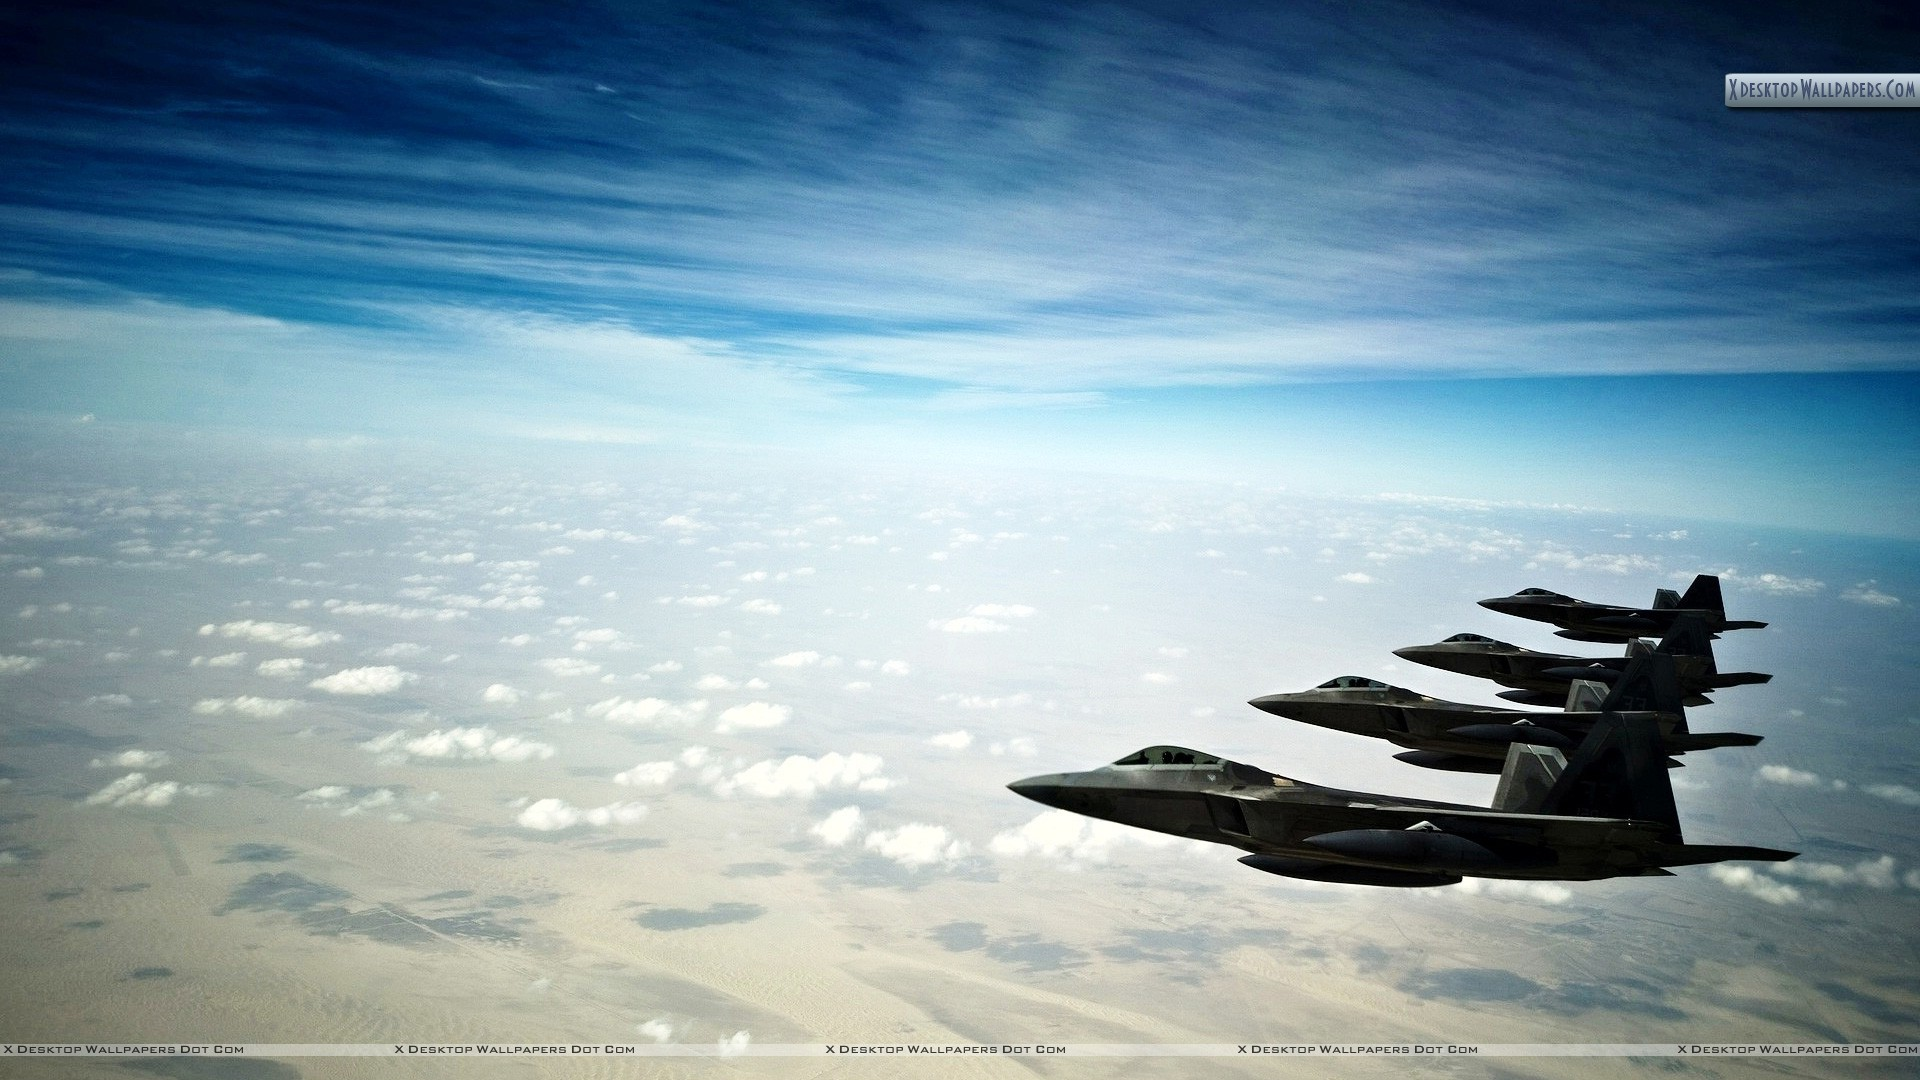 F 22 Raptor Stealth Fighters Wallpaper